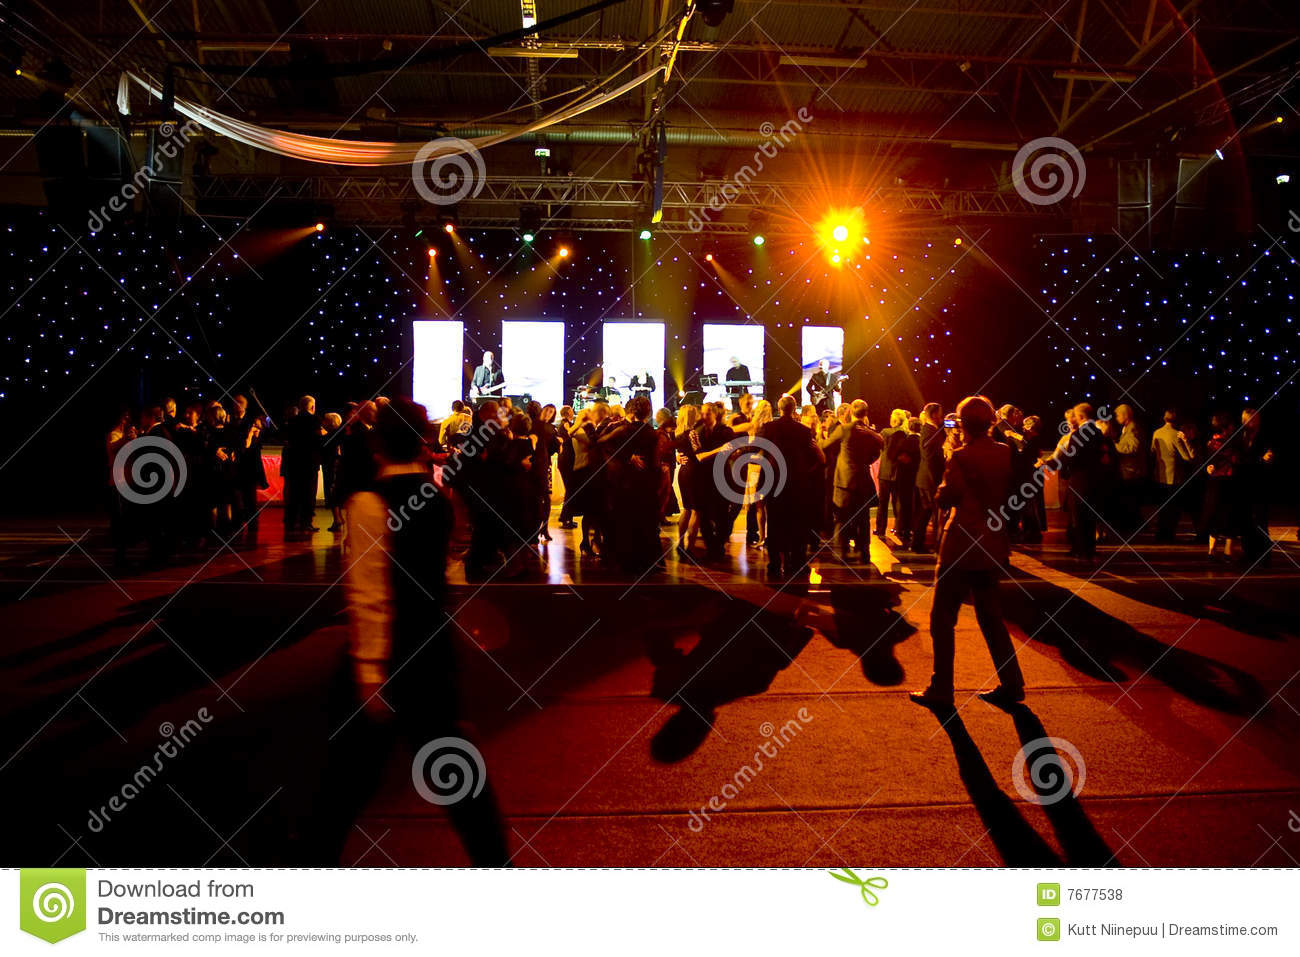 People dancing at stage